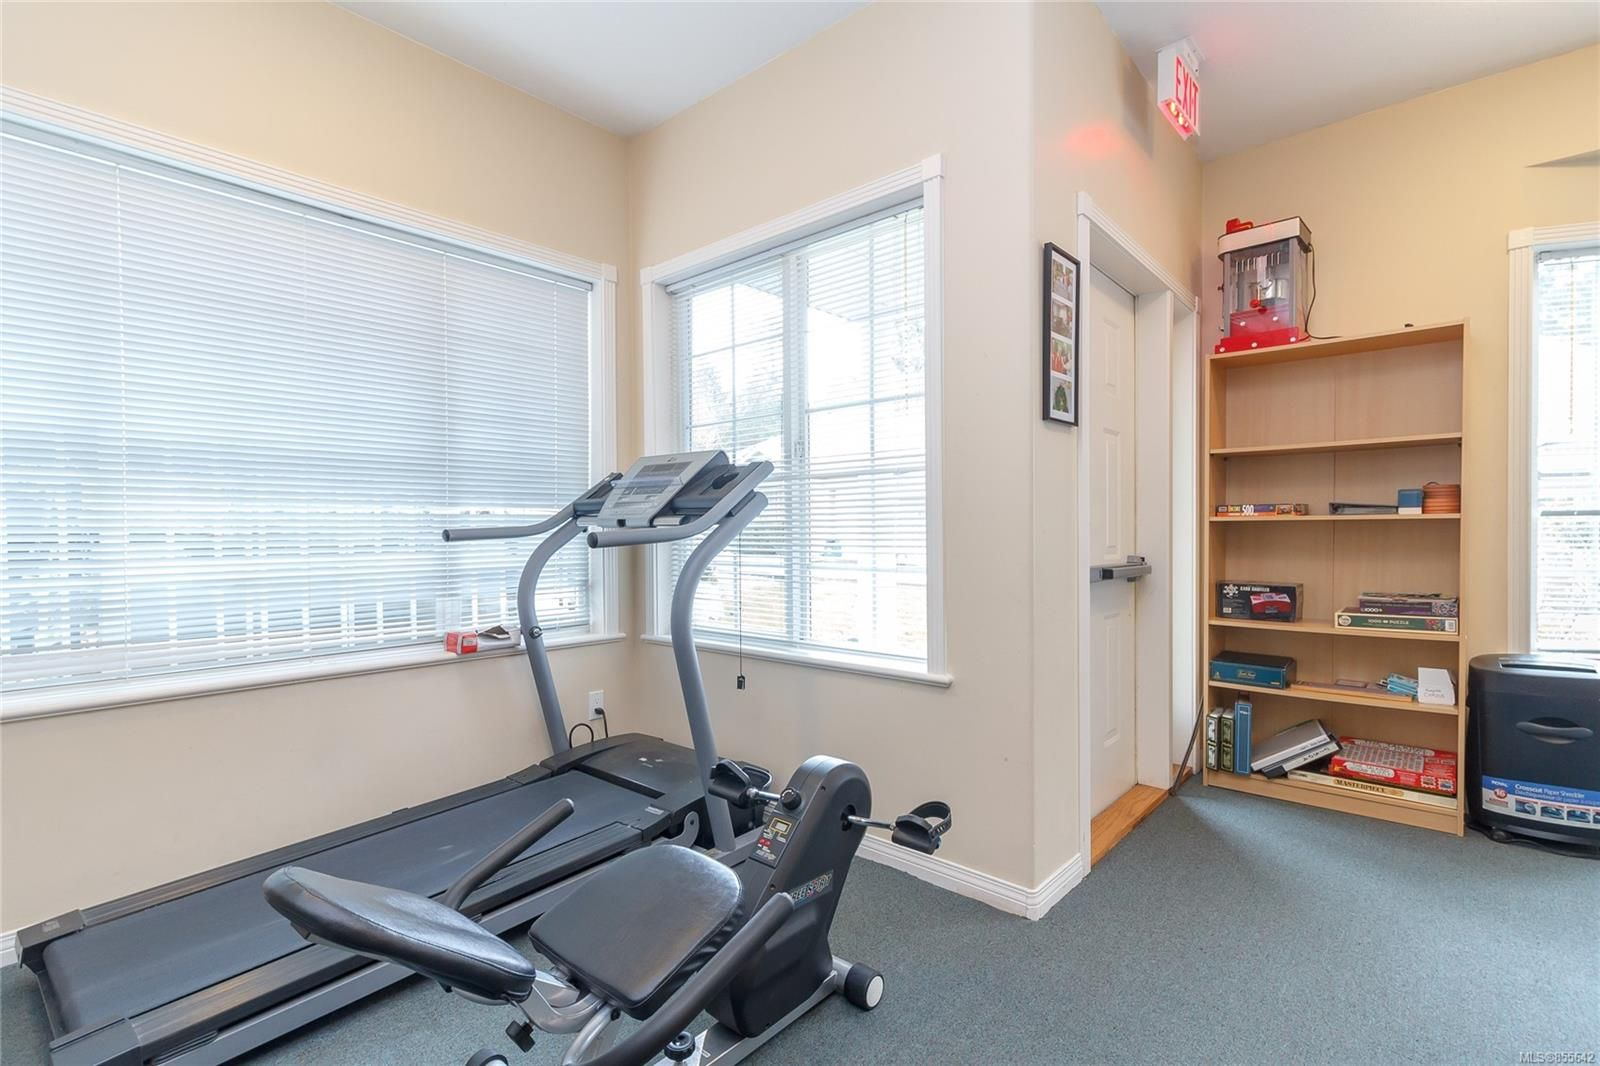 Photo 30: Photos: 52 14 Erskine Lane in : VR Hospital Row/Townhouse for sale (View Royal)  : MLS®# 855642